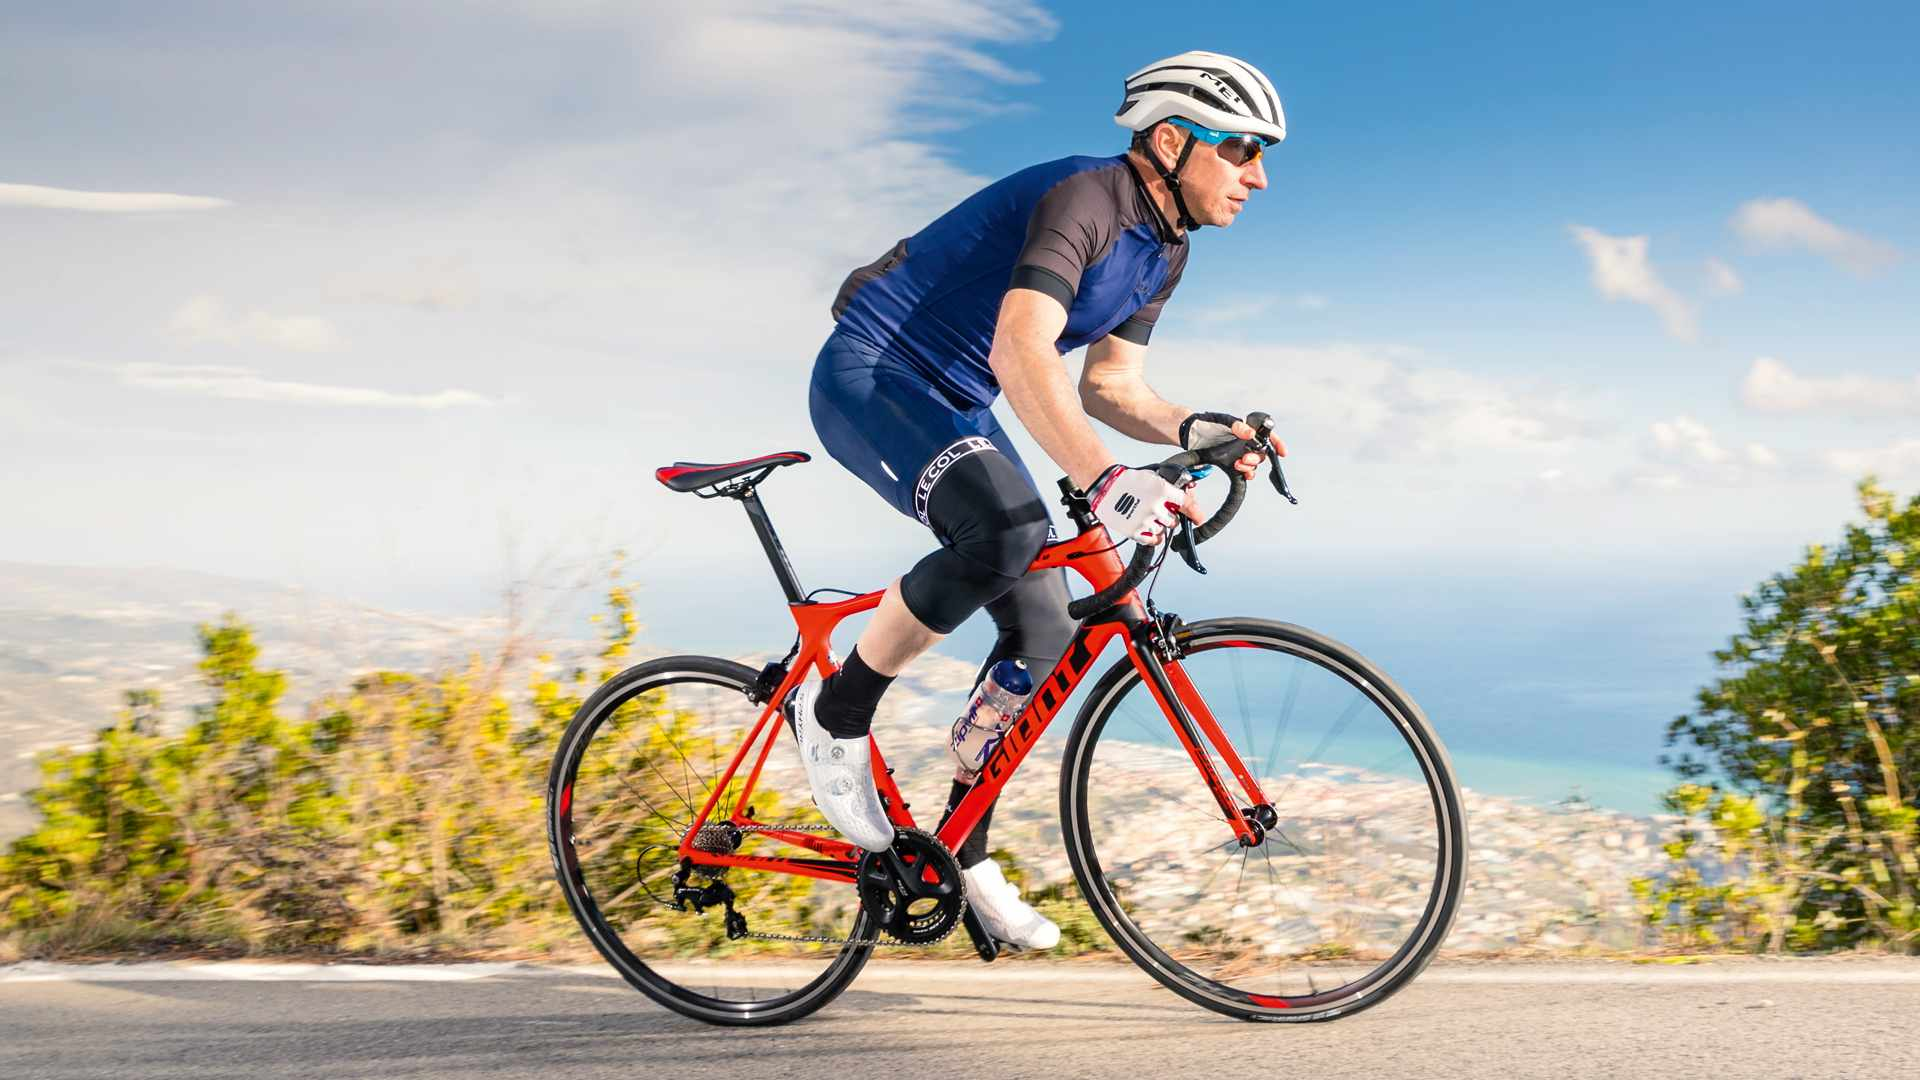 301e207eac3 The Giant TCR Advanced 2 was crowned our 2018 road bike of the year